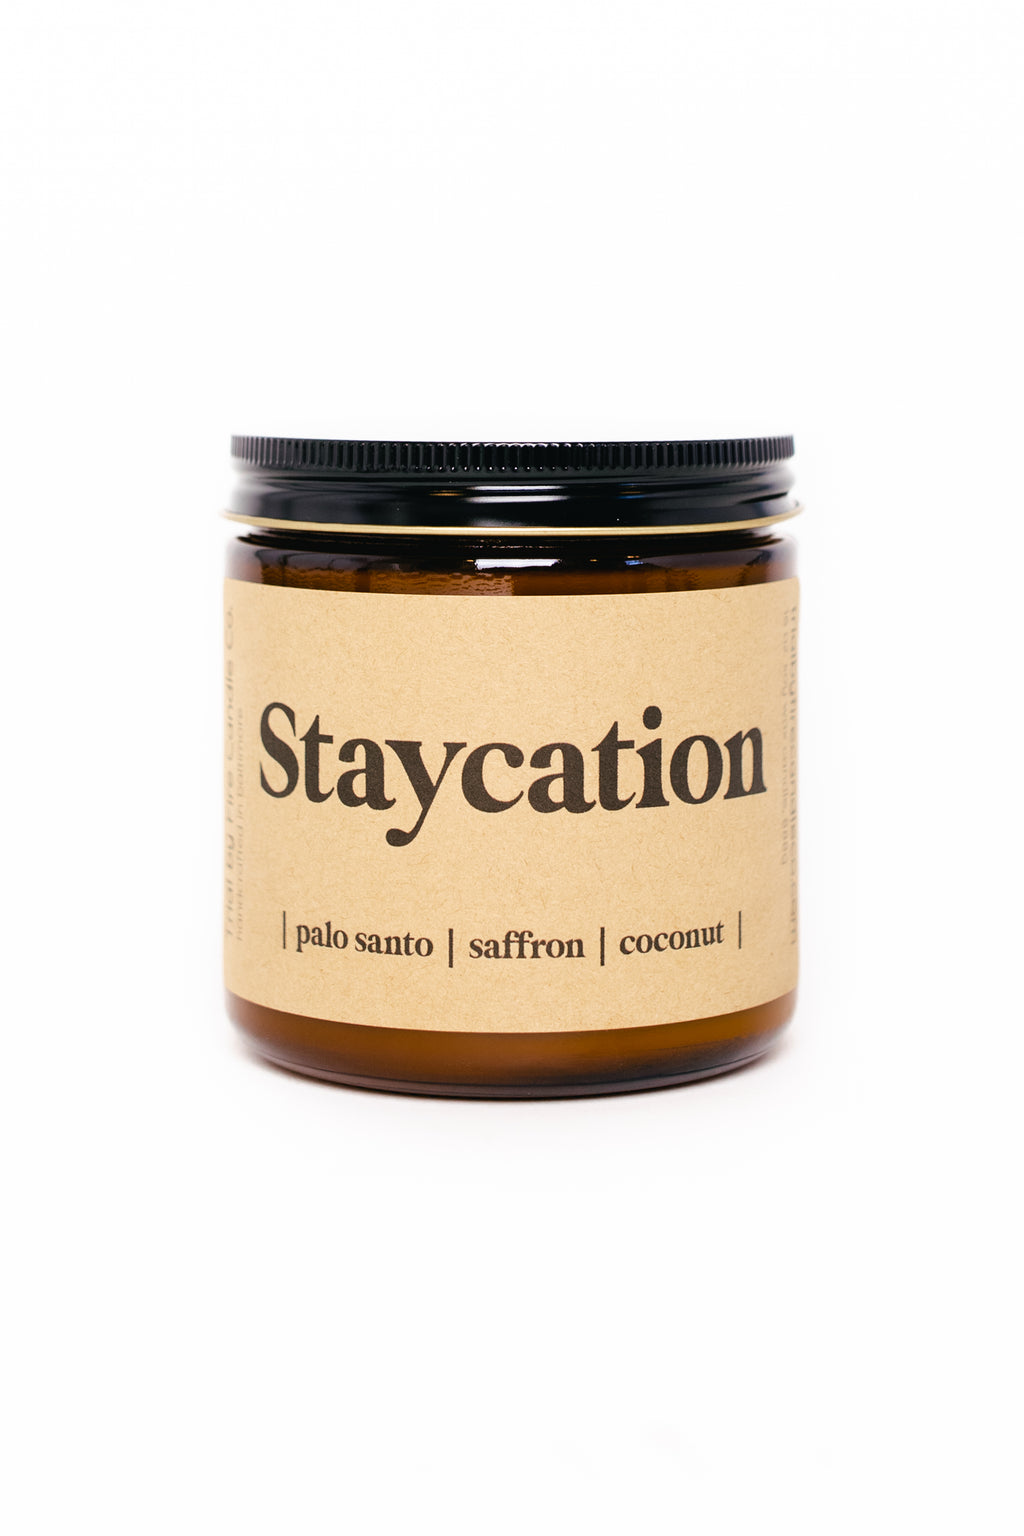 Staycation 16 oz. Candle